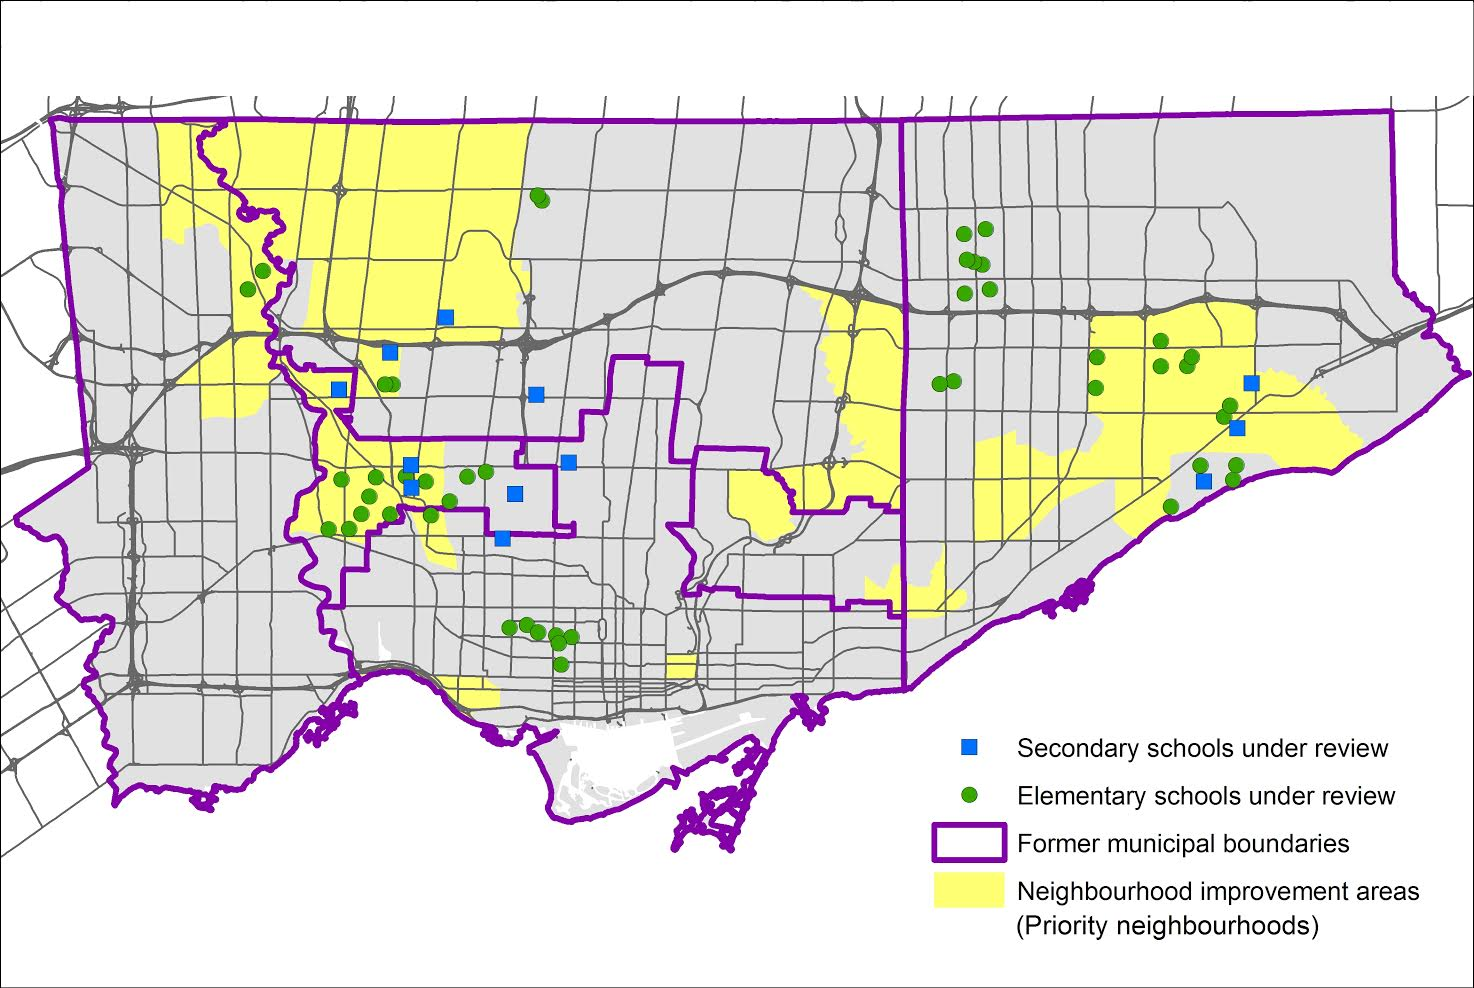 School Closures Toronto: Mapping Which Neighbourhoods Could Be Most Affected By